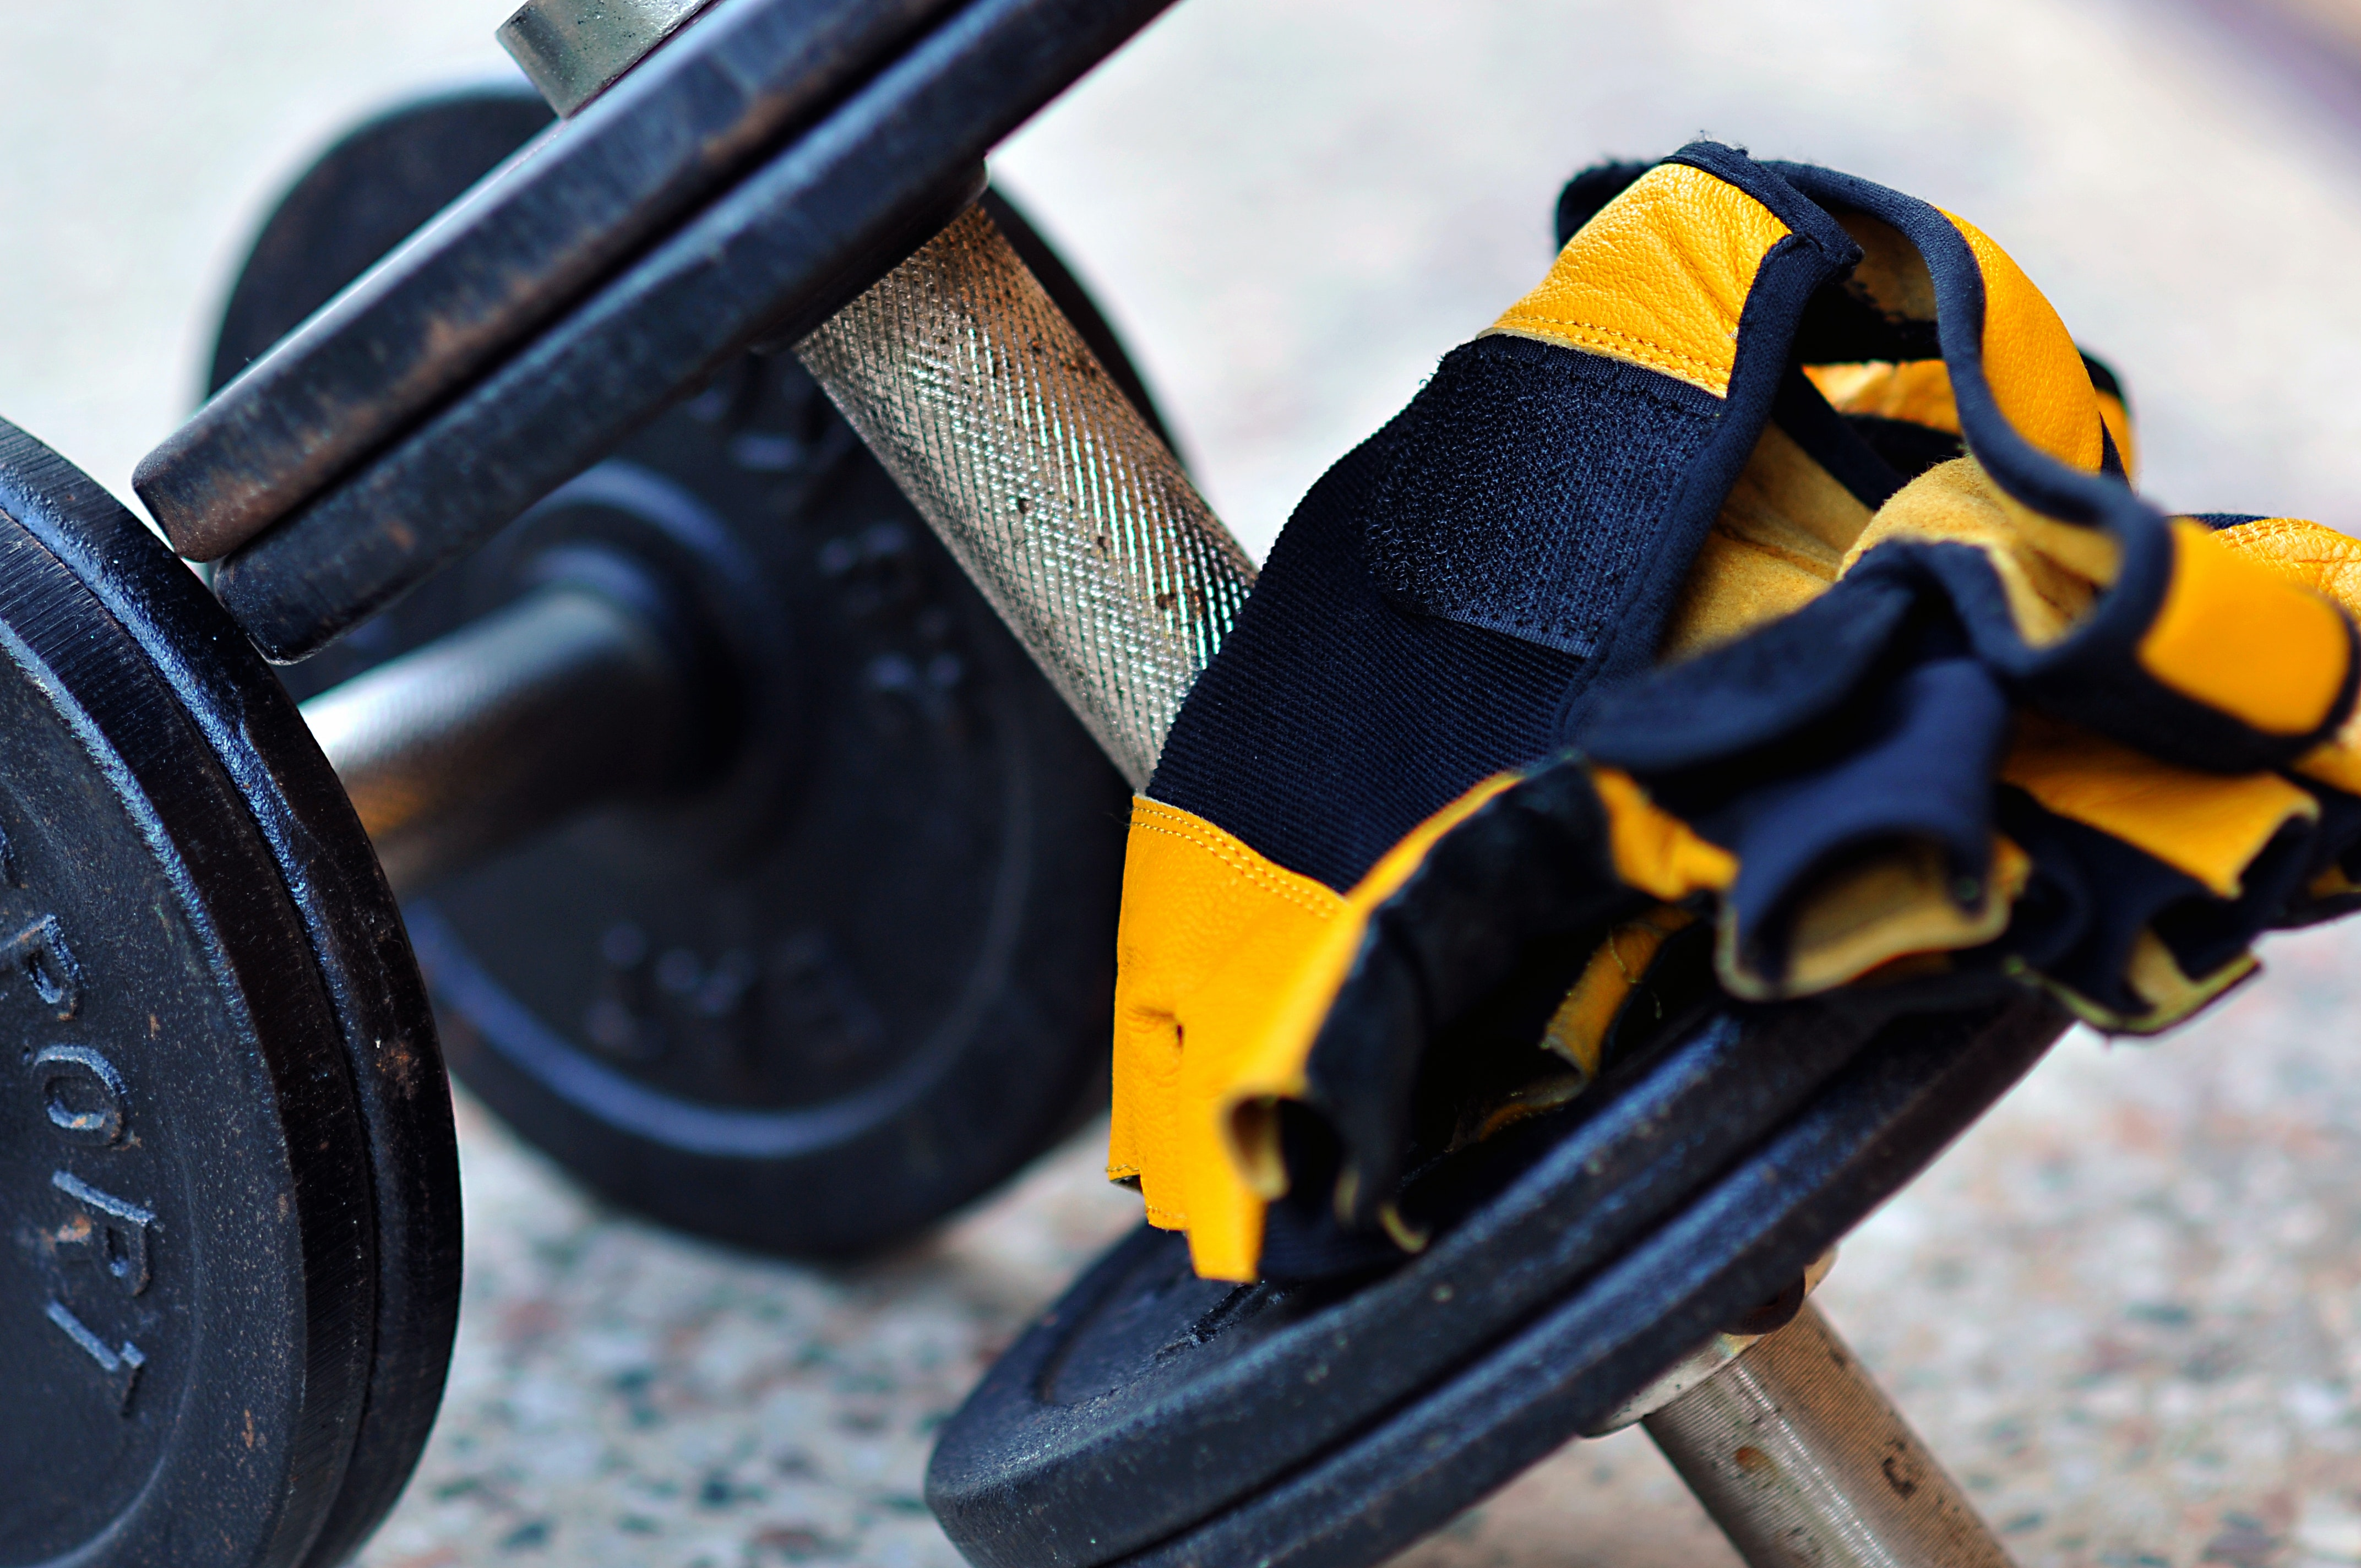 Roller Skating Shoes Price In Chennai